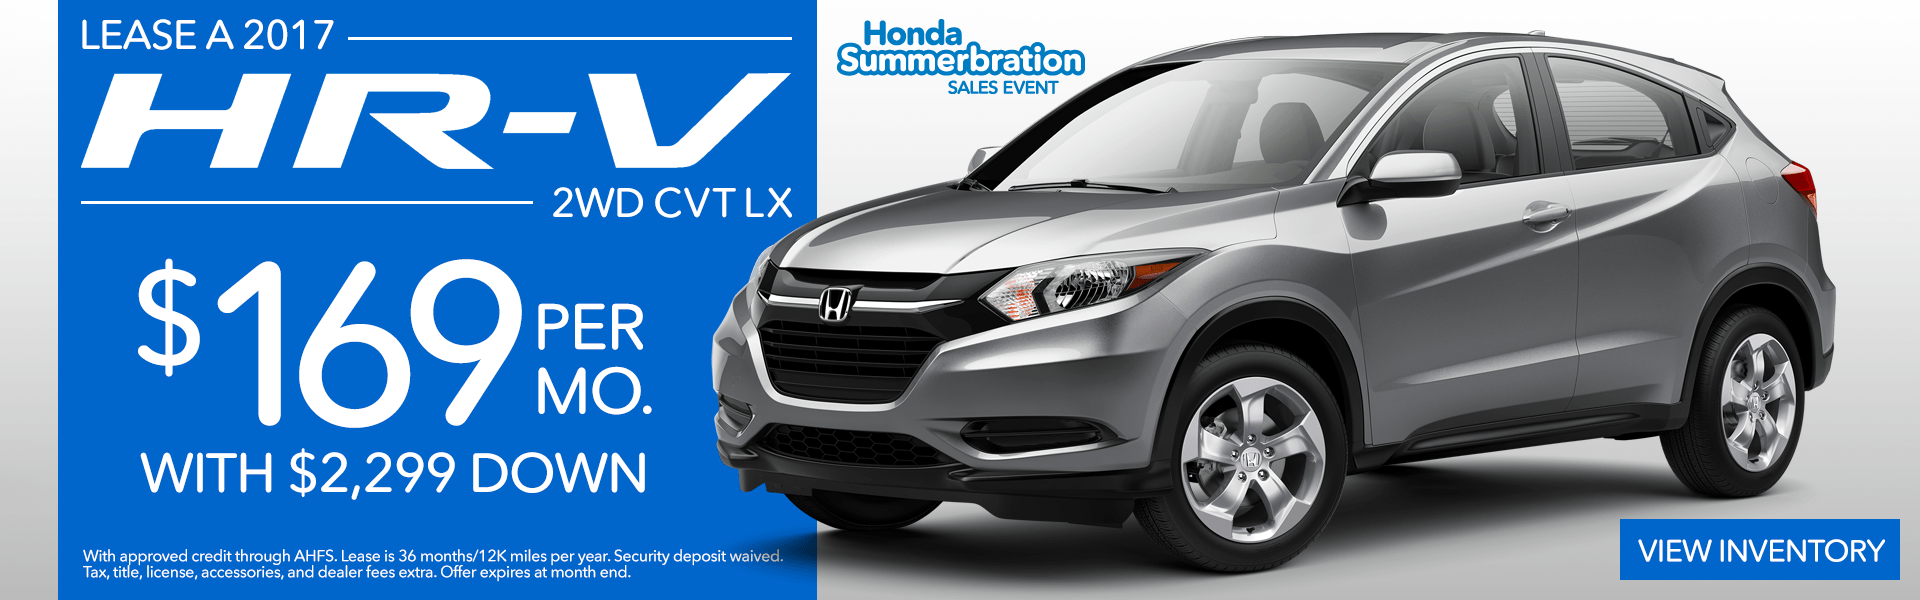 2017 Honda HR-V Lease